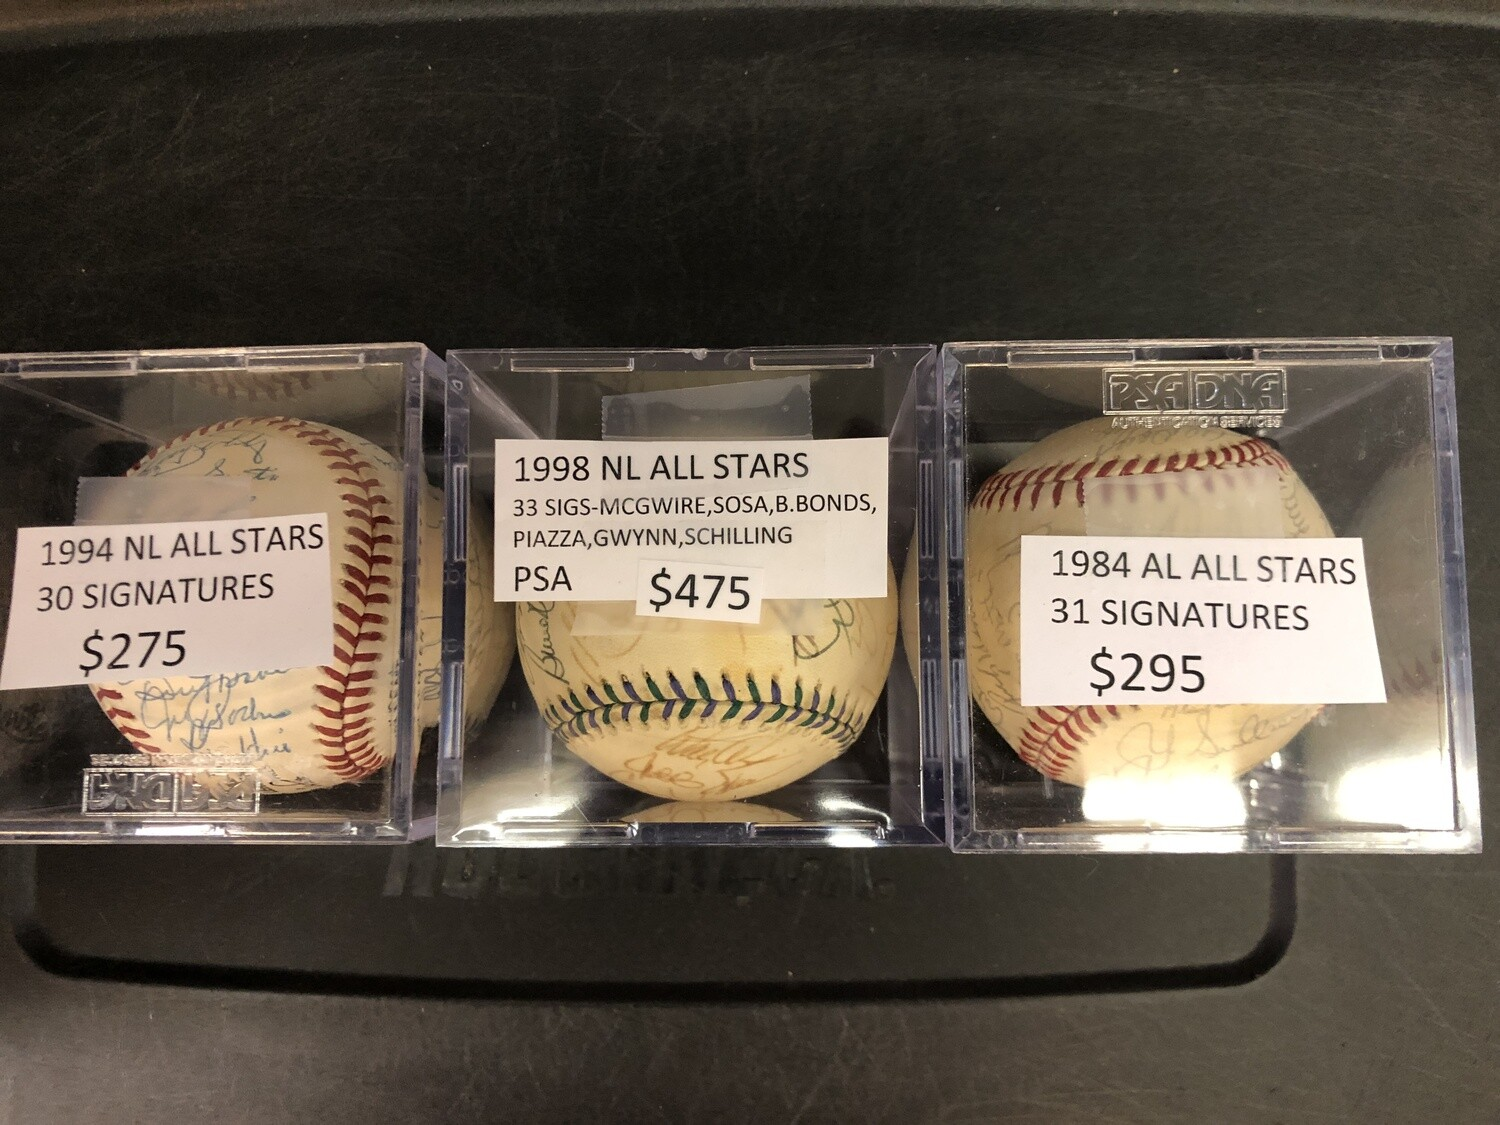 1998 National League All Stars signed ball PSA 33 sigs